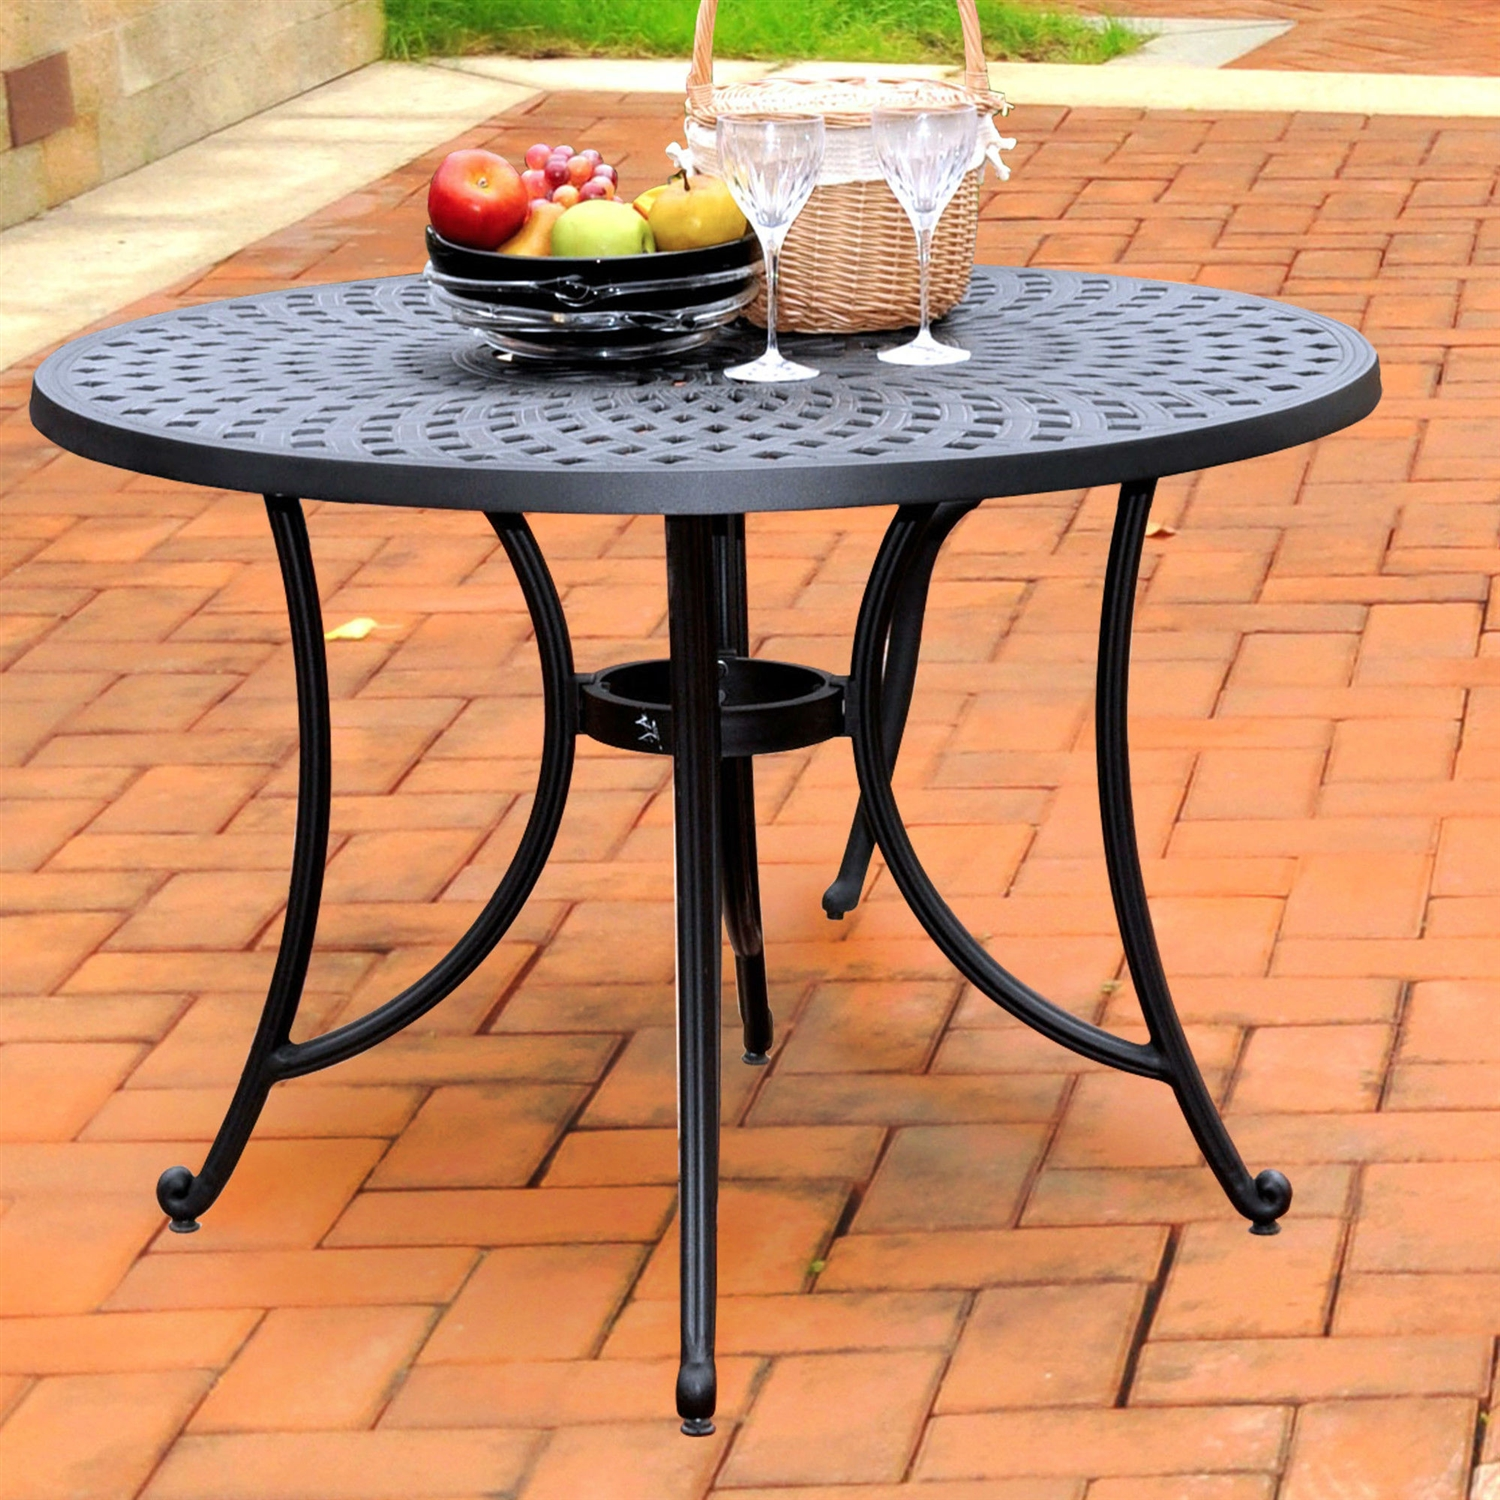 Round 42 Inch Cast Aluminum Outdoor Dining Table In Charcoal Black Fastfurnishings Com